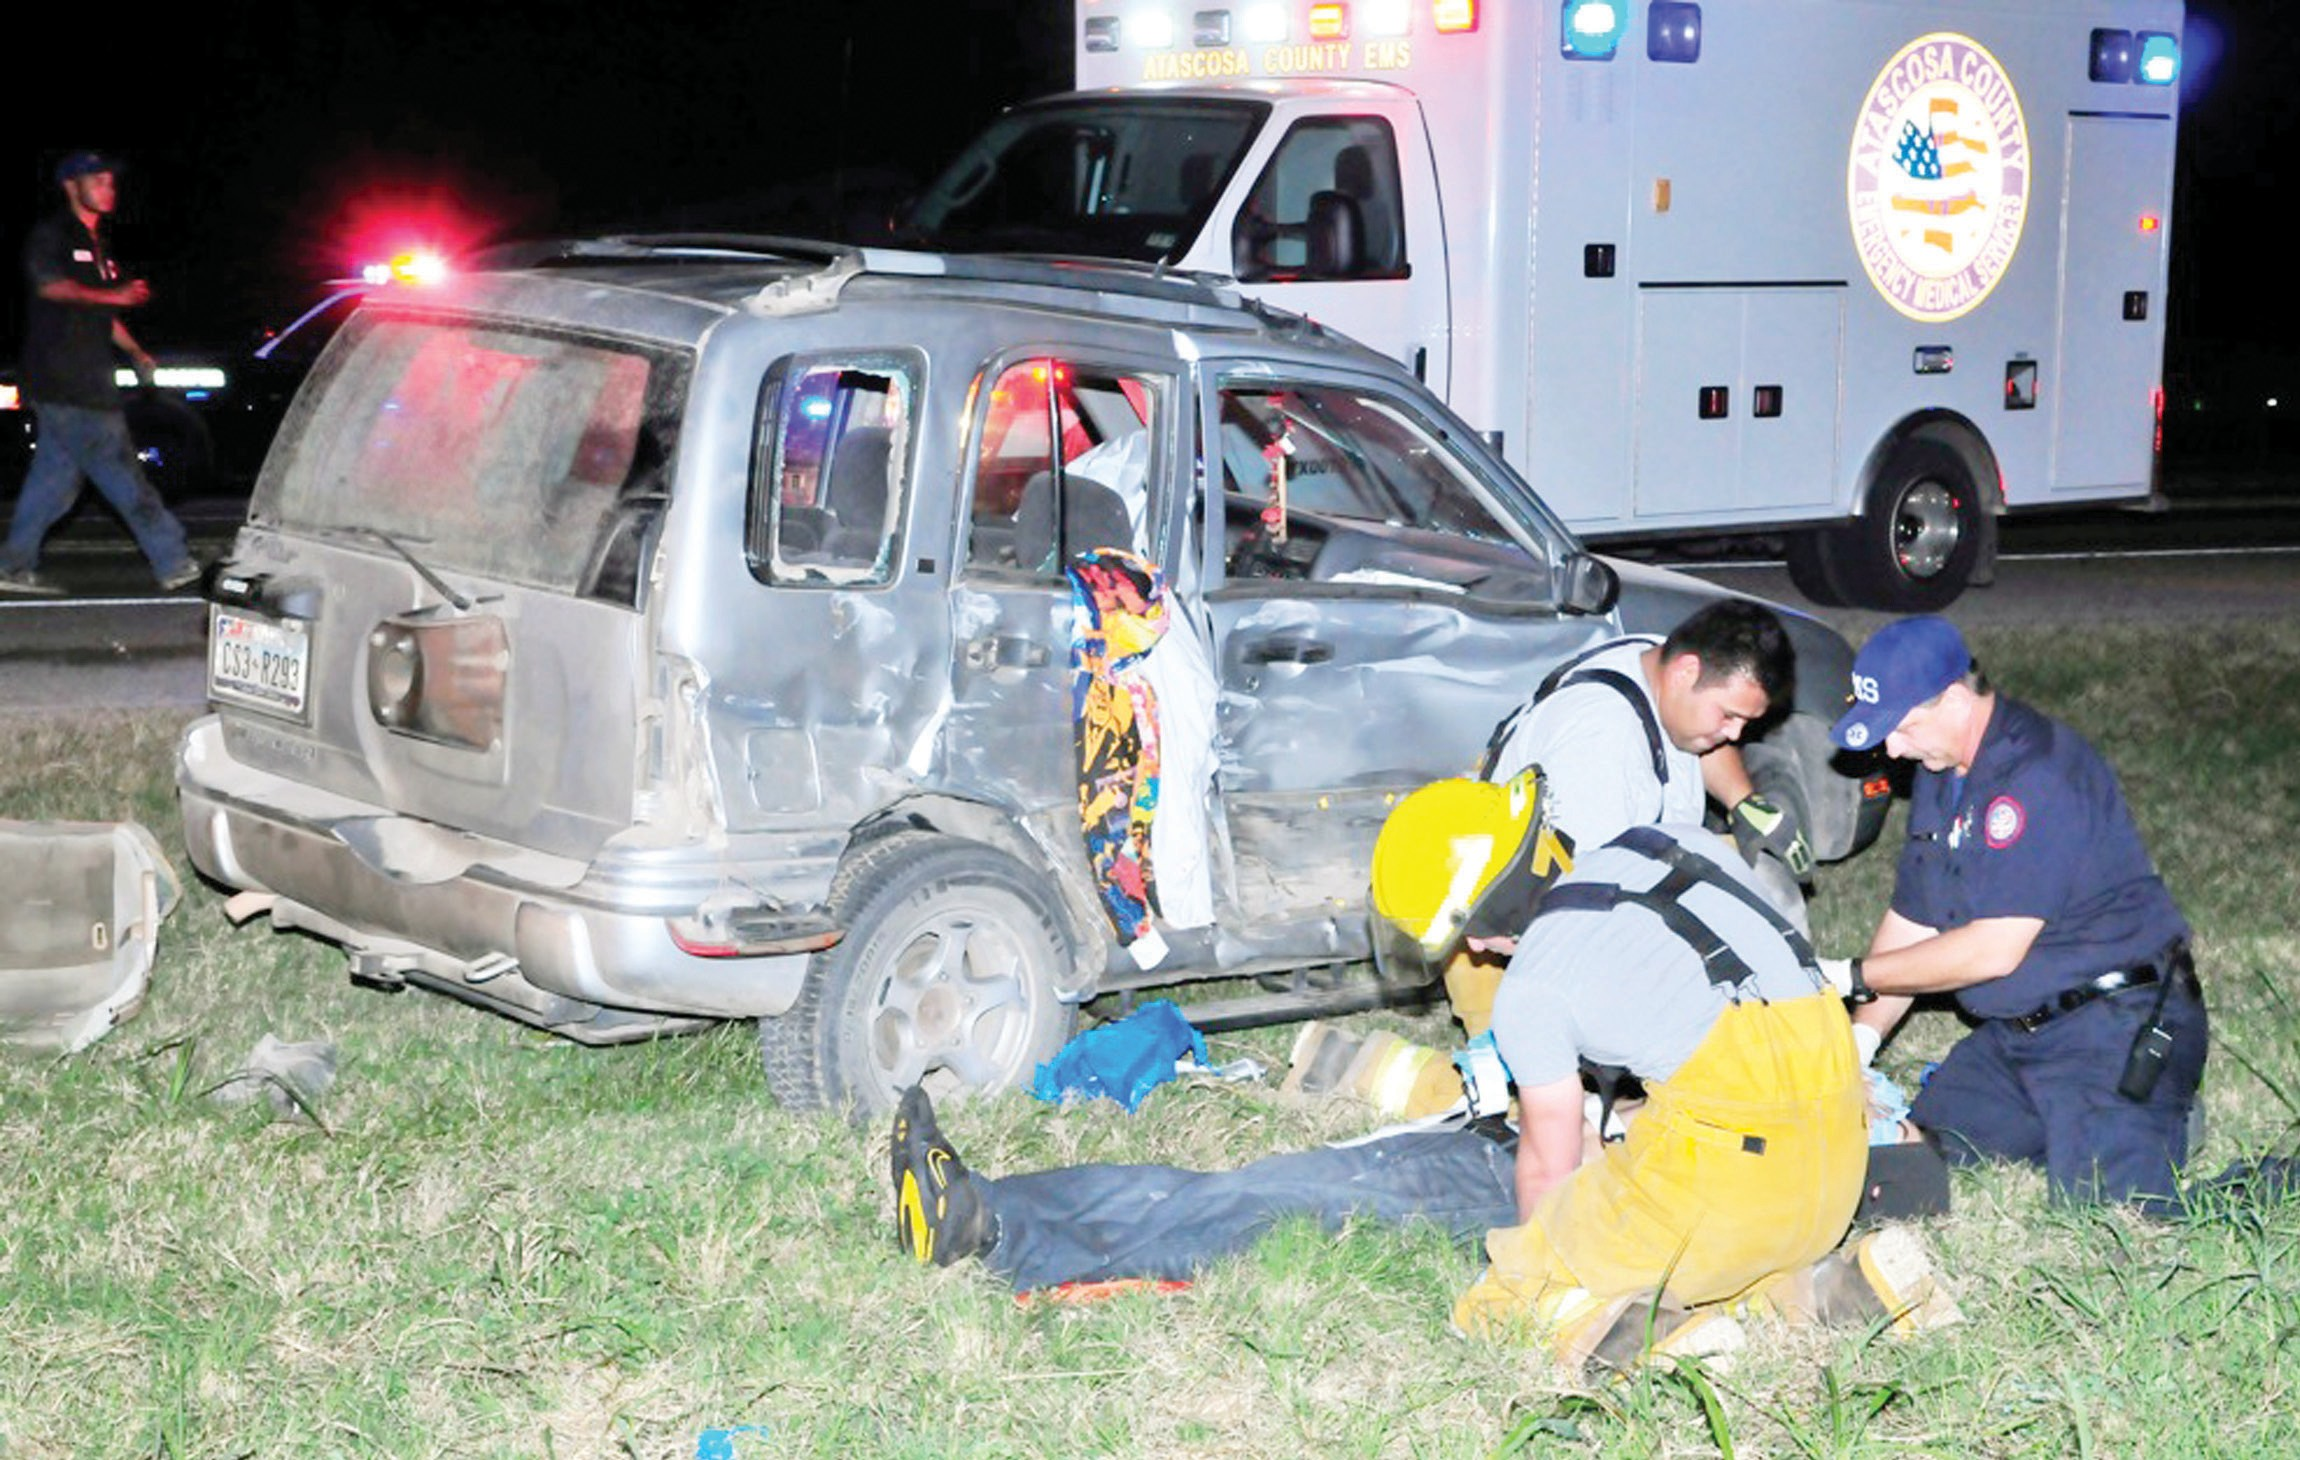 Emergency workers tend to 7-year-old Jade Romero after a crash on Hwy. 97 in Charlotte. Romero was taken to University Hospital by AirLife and the driver,Edwin Miranda and passengers Evan Romero and Clemencia Calvillo to South Texas Regional Medical Center. The accident occurred around 7 p.m. on Tuesday.